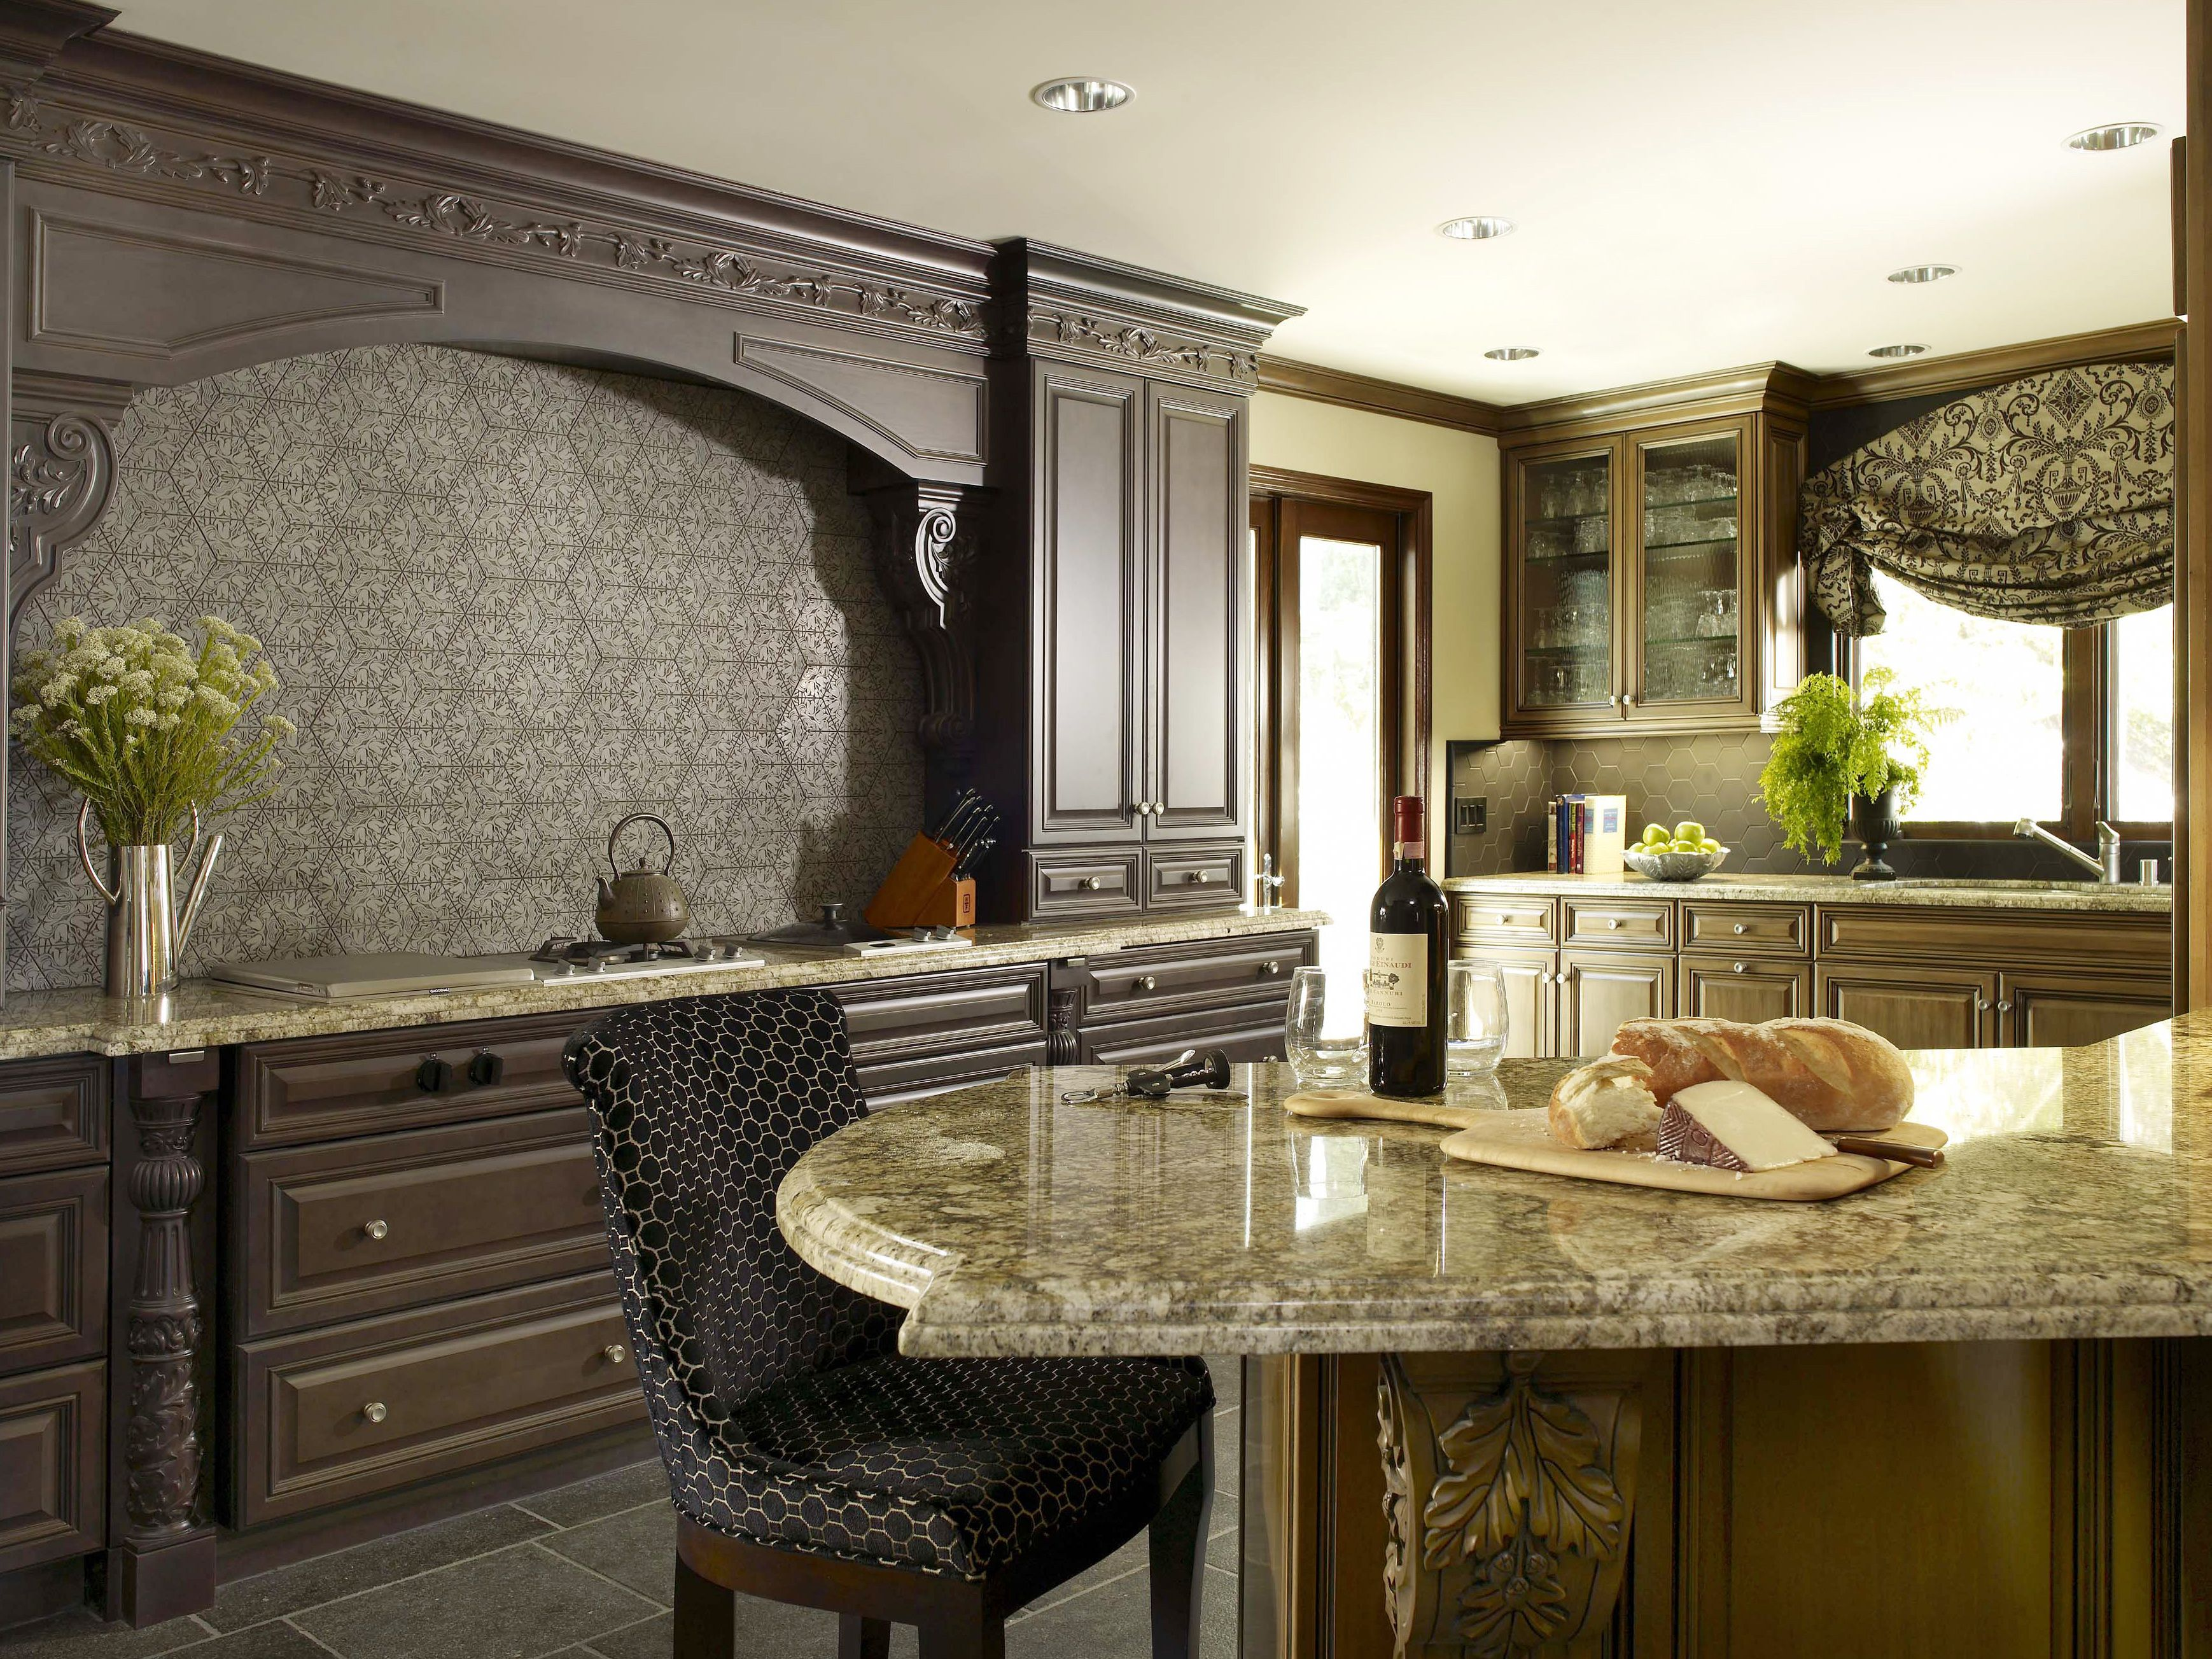 Spanish Backsplash For Dark Cabinets Google Search With Images